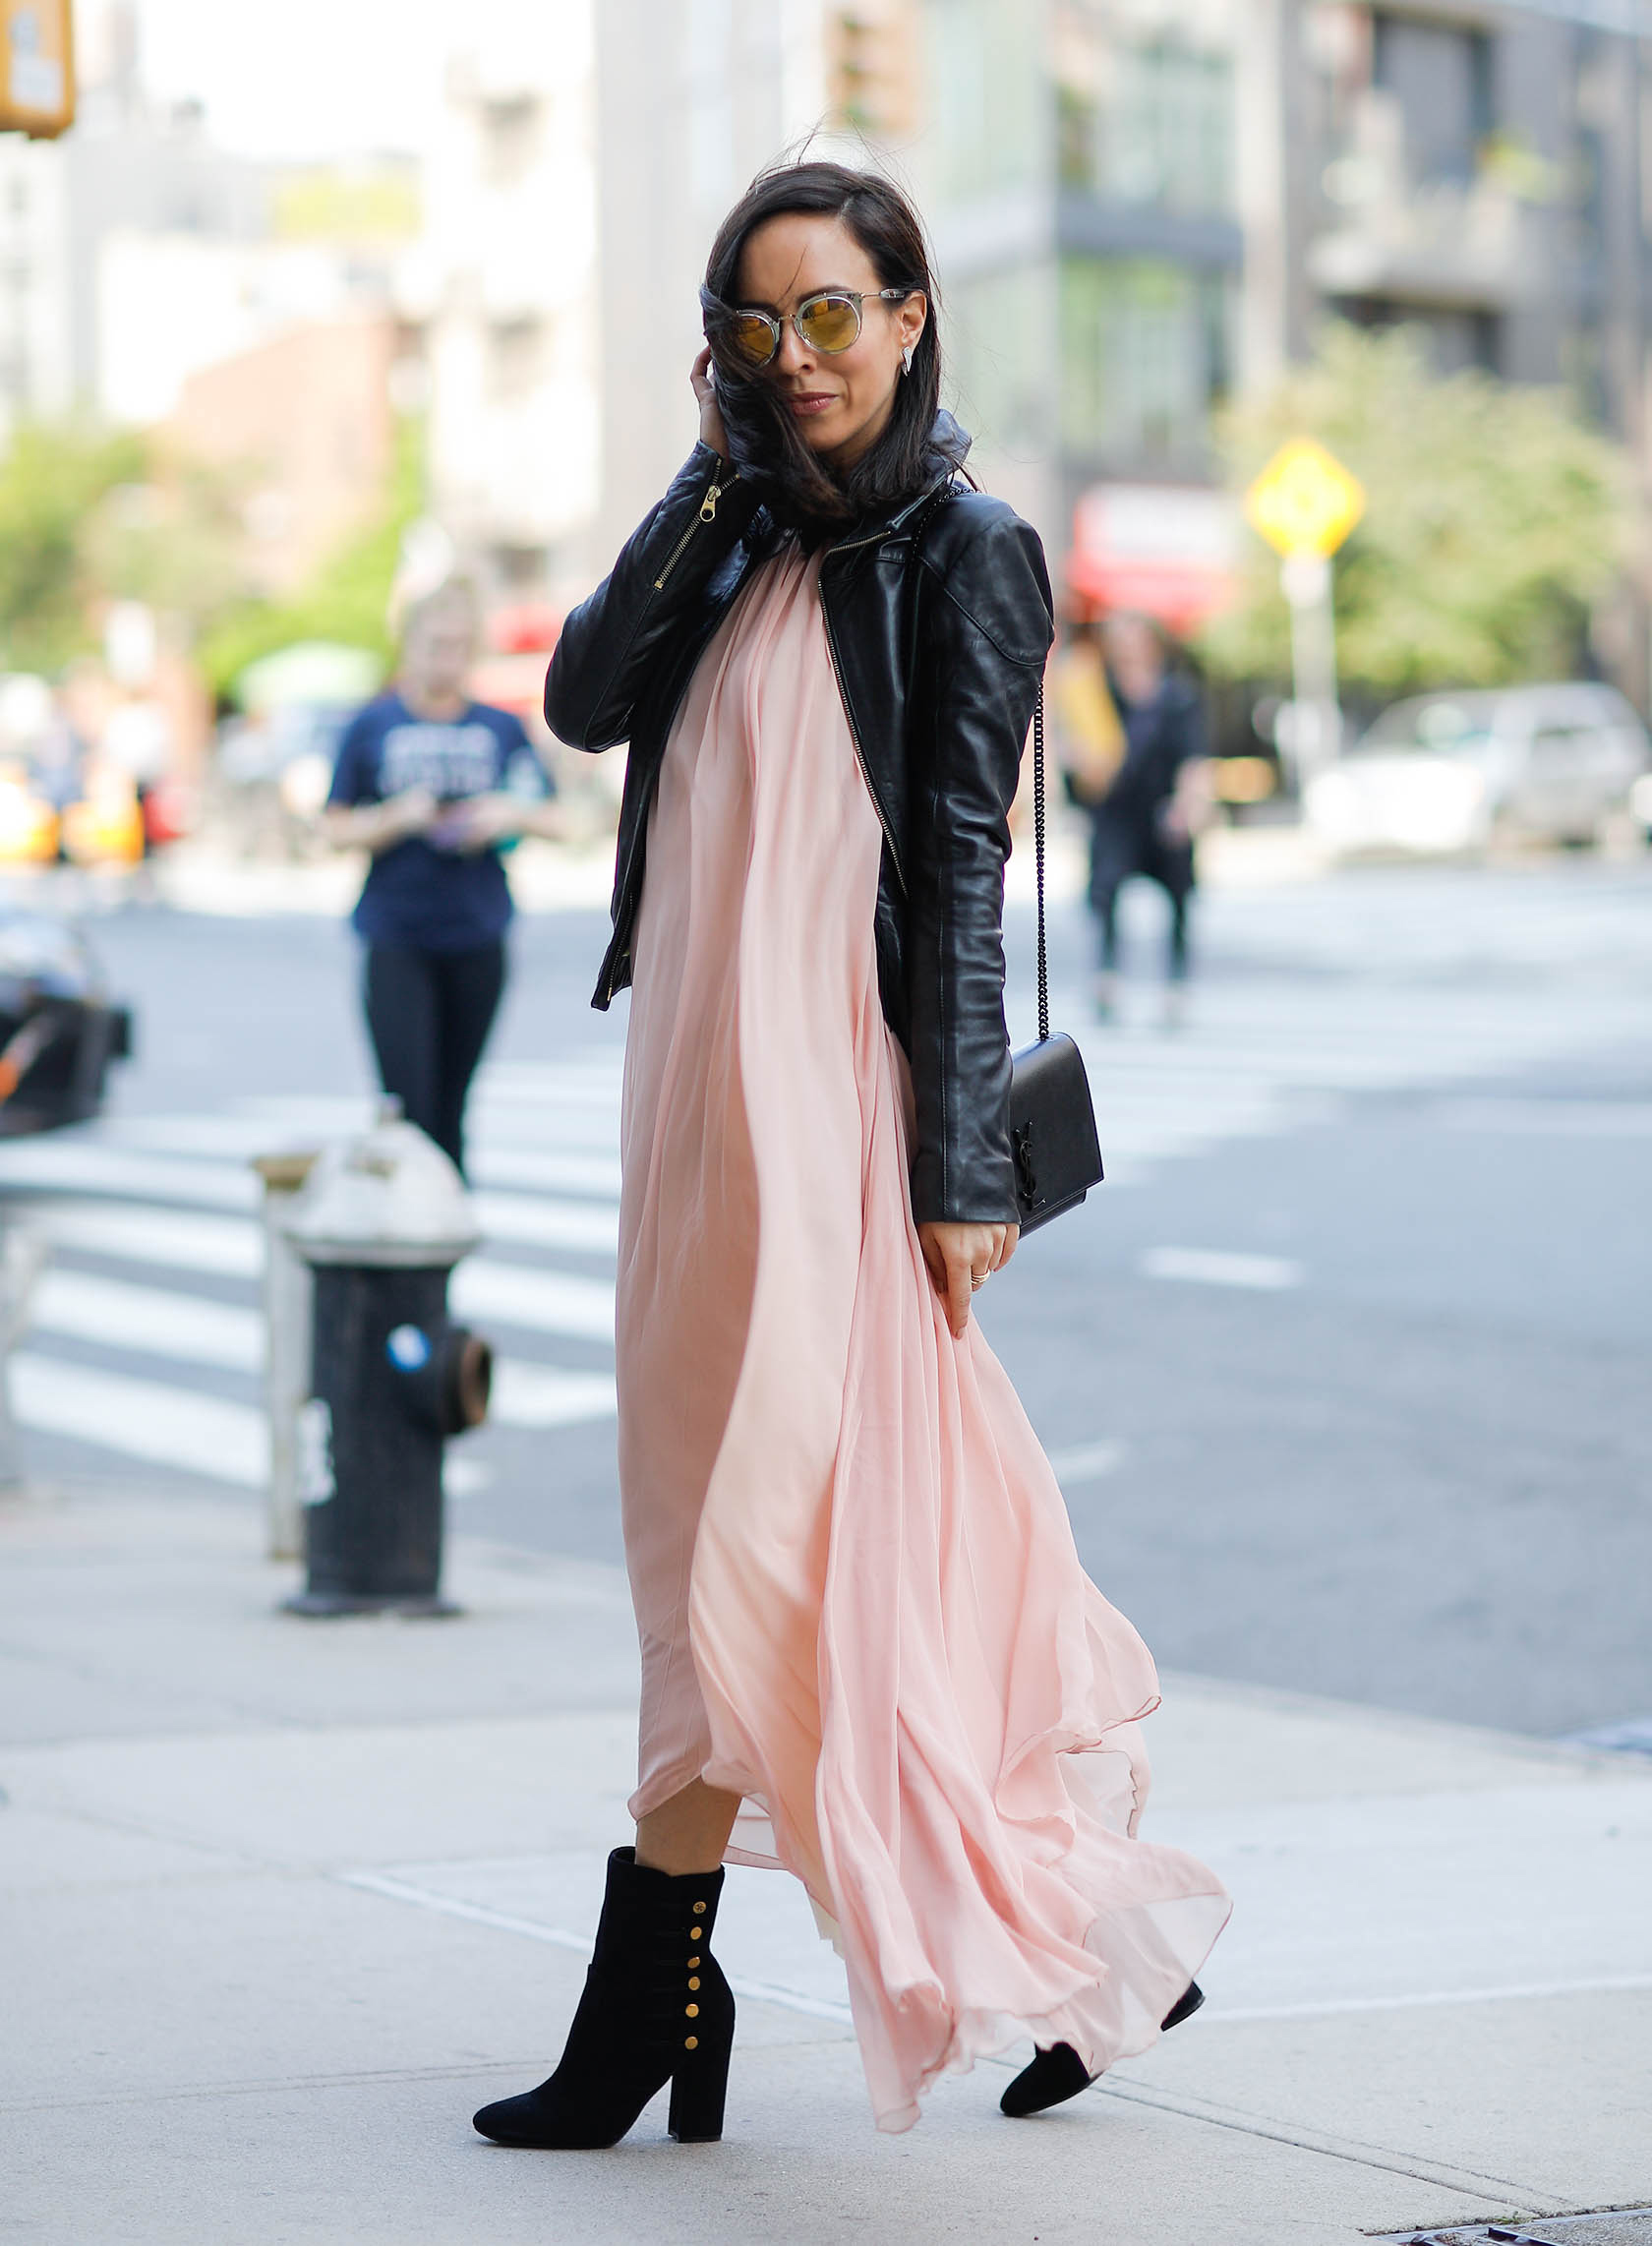 Sydne Style shows how to wear a maxi dress for fall trends